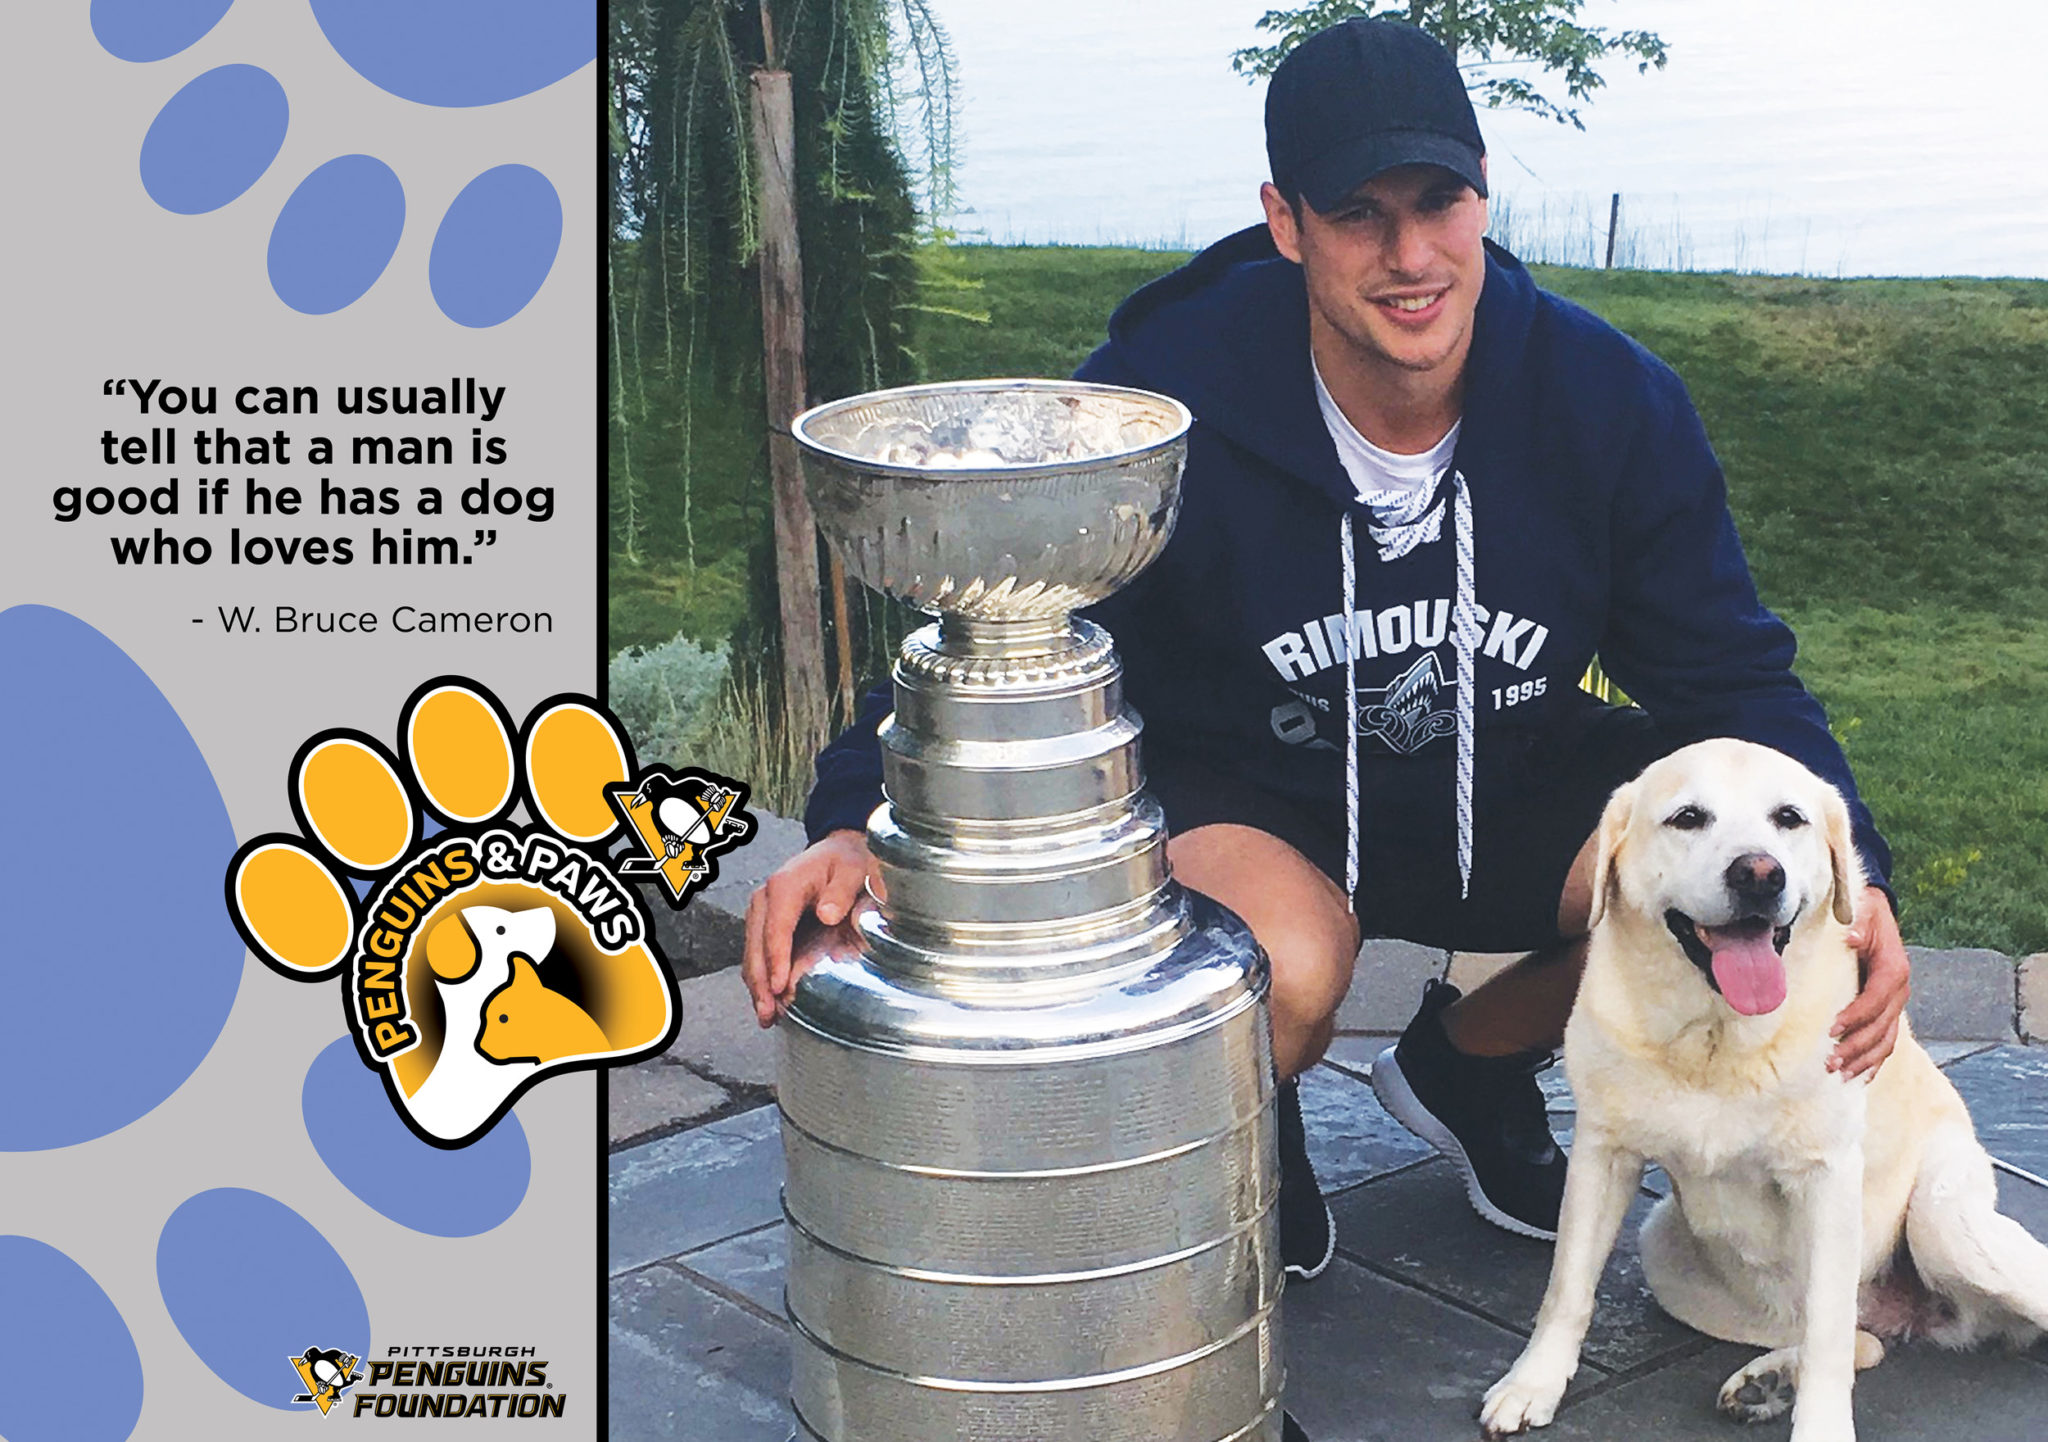 Pittsburgh Calendar 2019 Penguins & Paws Charity Pet Calendar | Pittsburgh Penguins Foundation